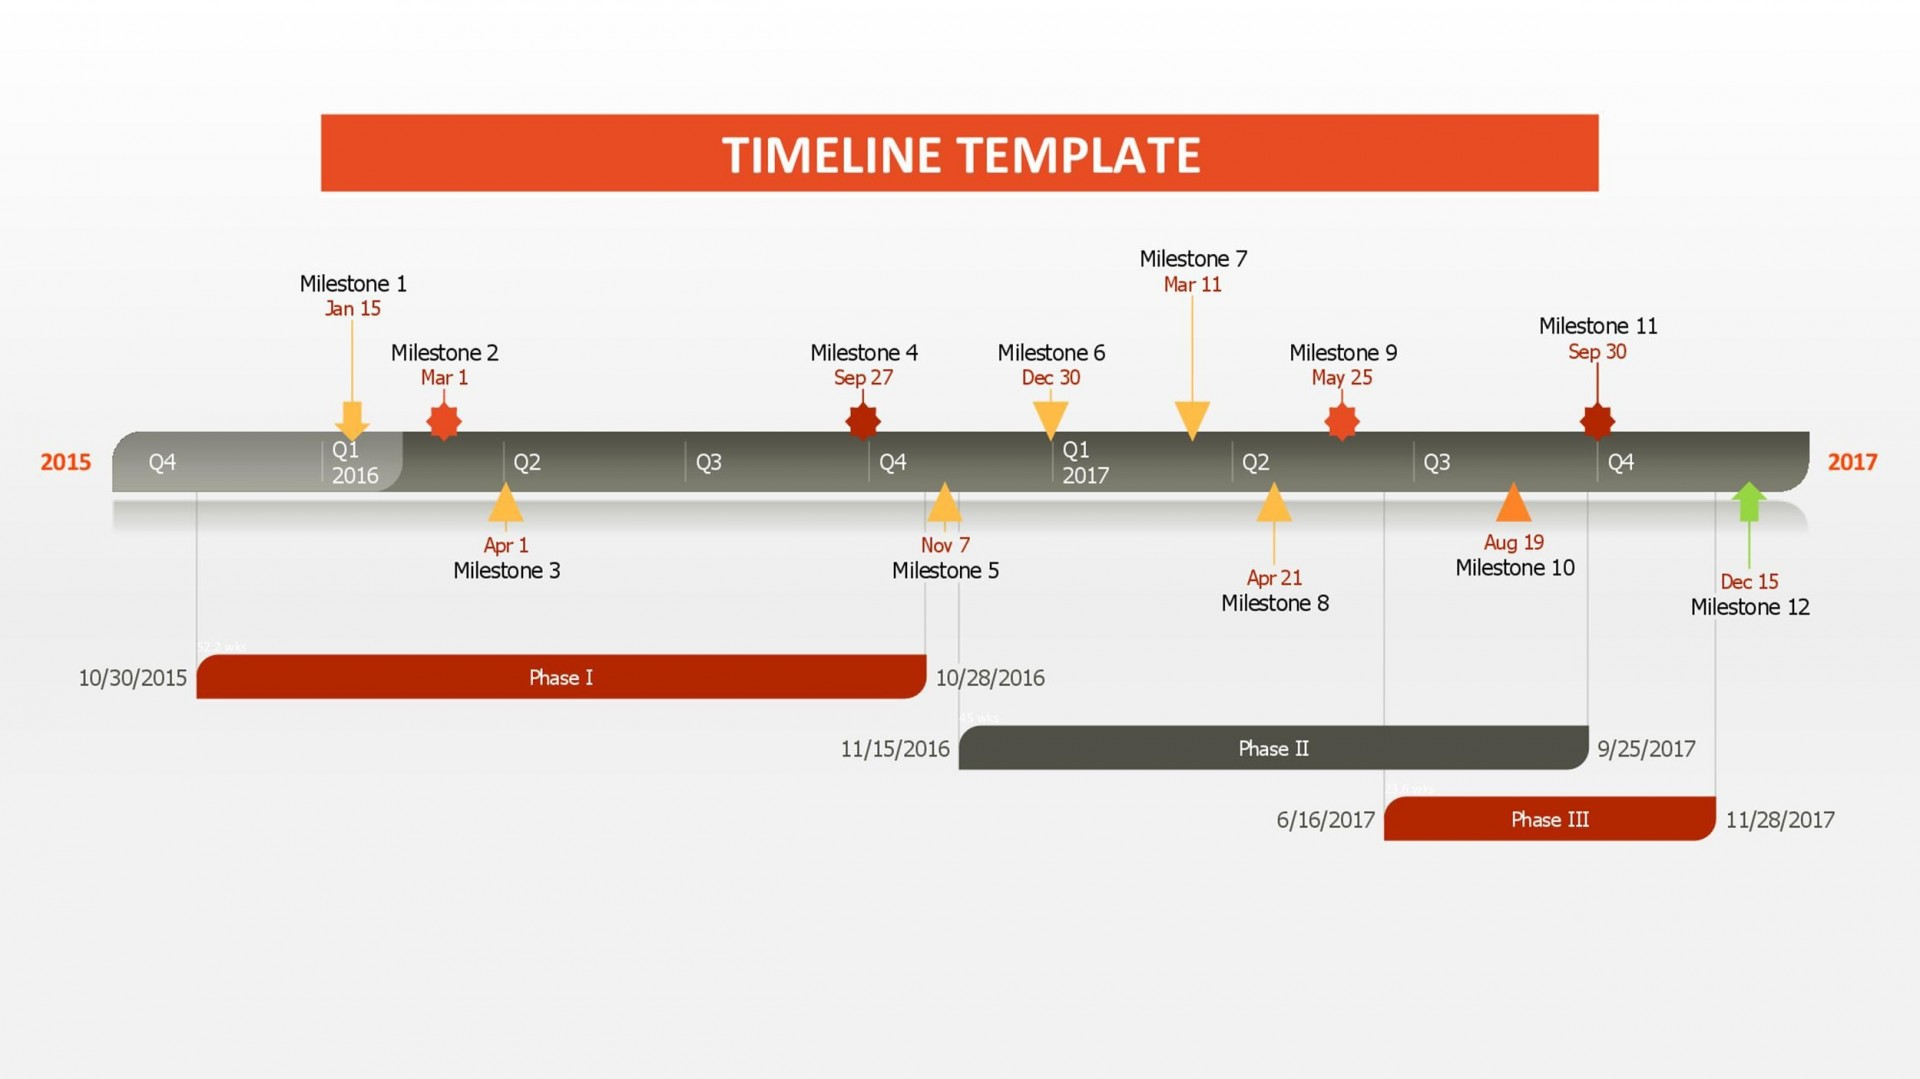 003 Amazing Timeline Template For Word 2016 Photo 1920